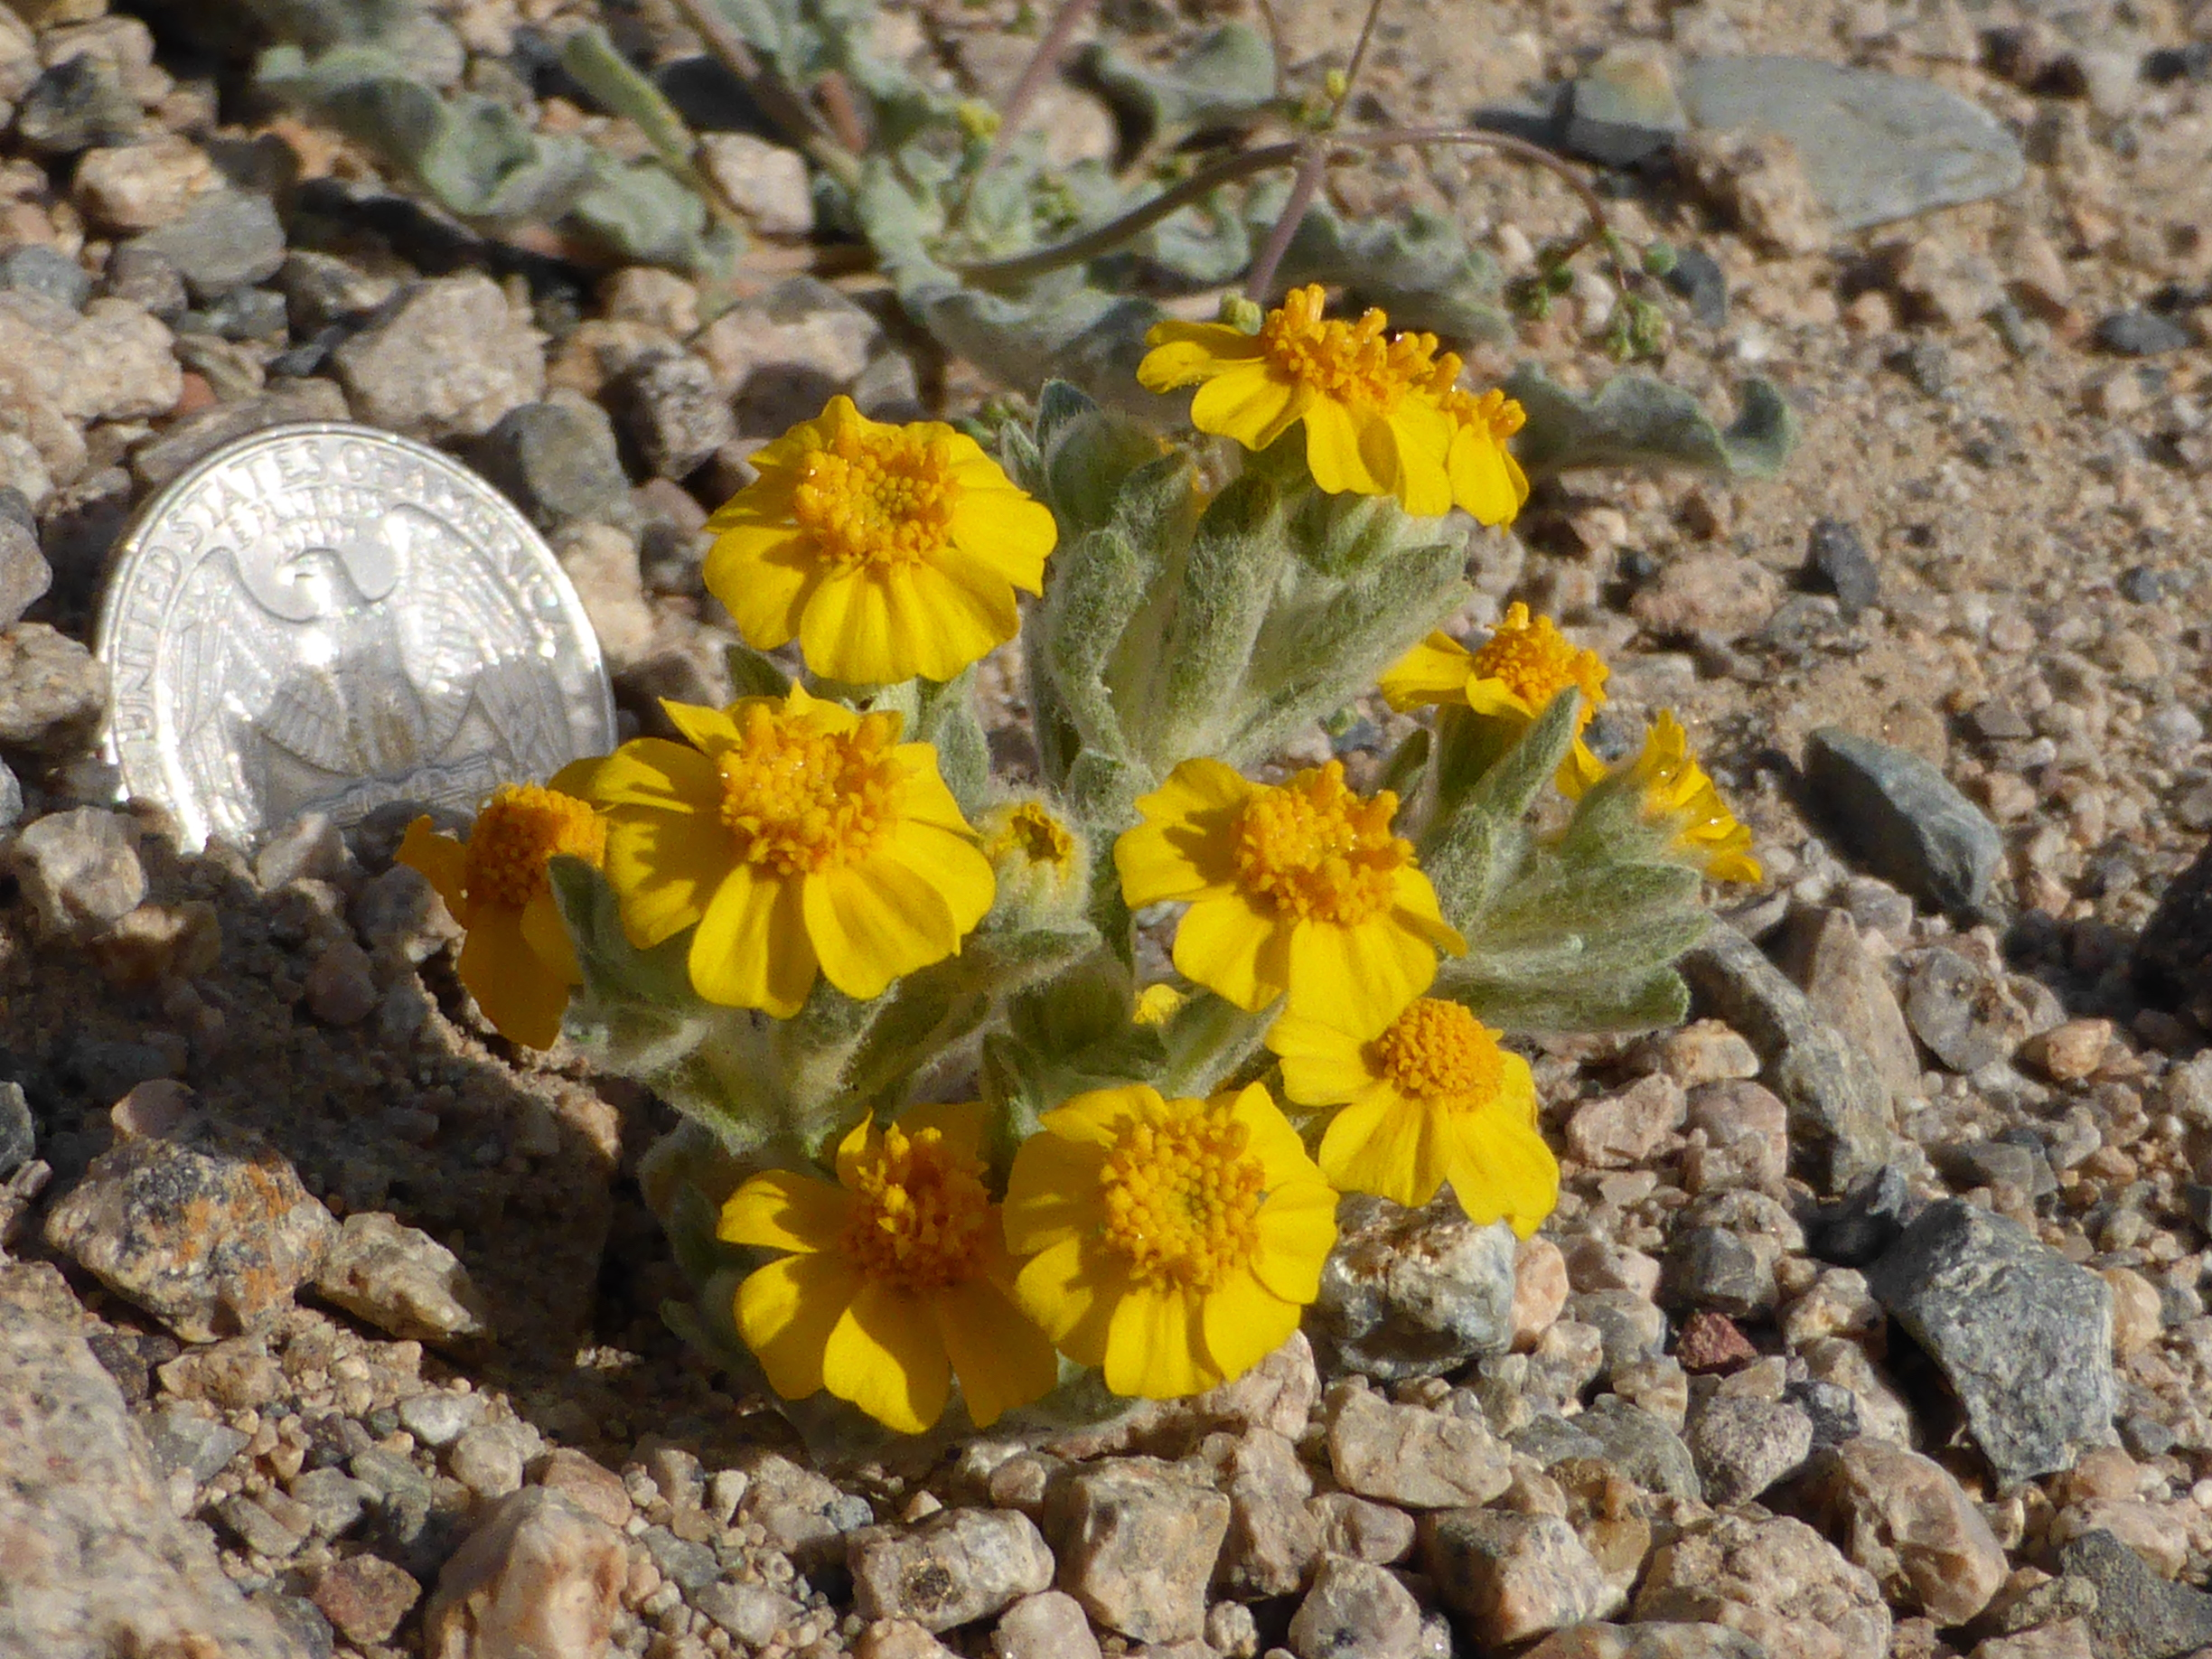 A closeup of a small yellow flower, the common Wallace's woolly daisy, nest to a quarter in Mojave Desert